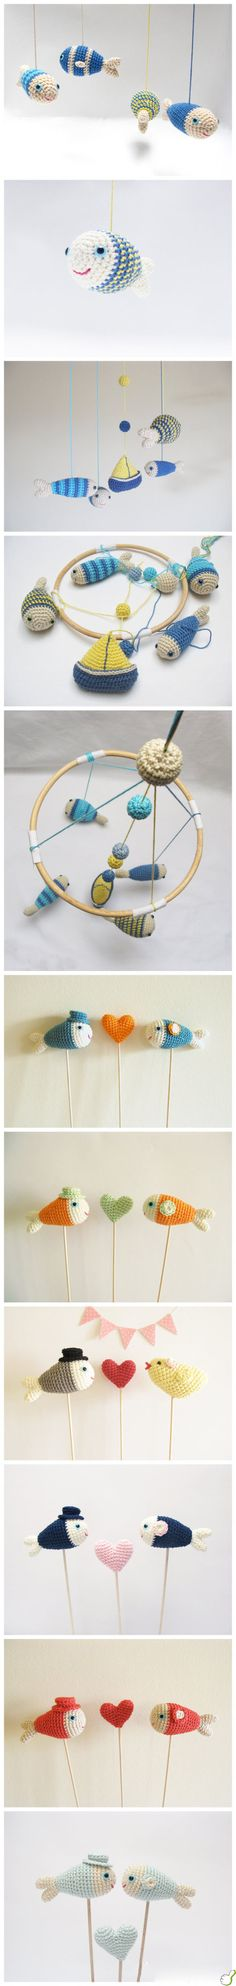 I have no idea how to crochet... but these are **so** cute! They make me want to learn.